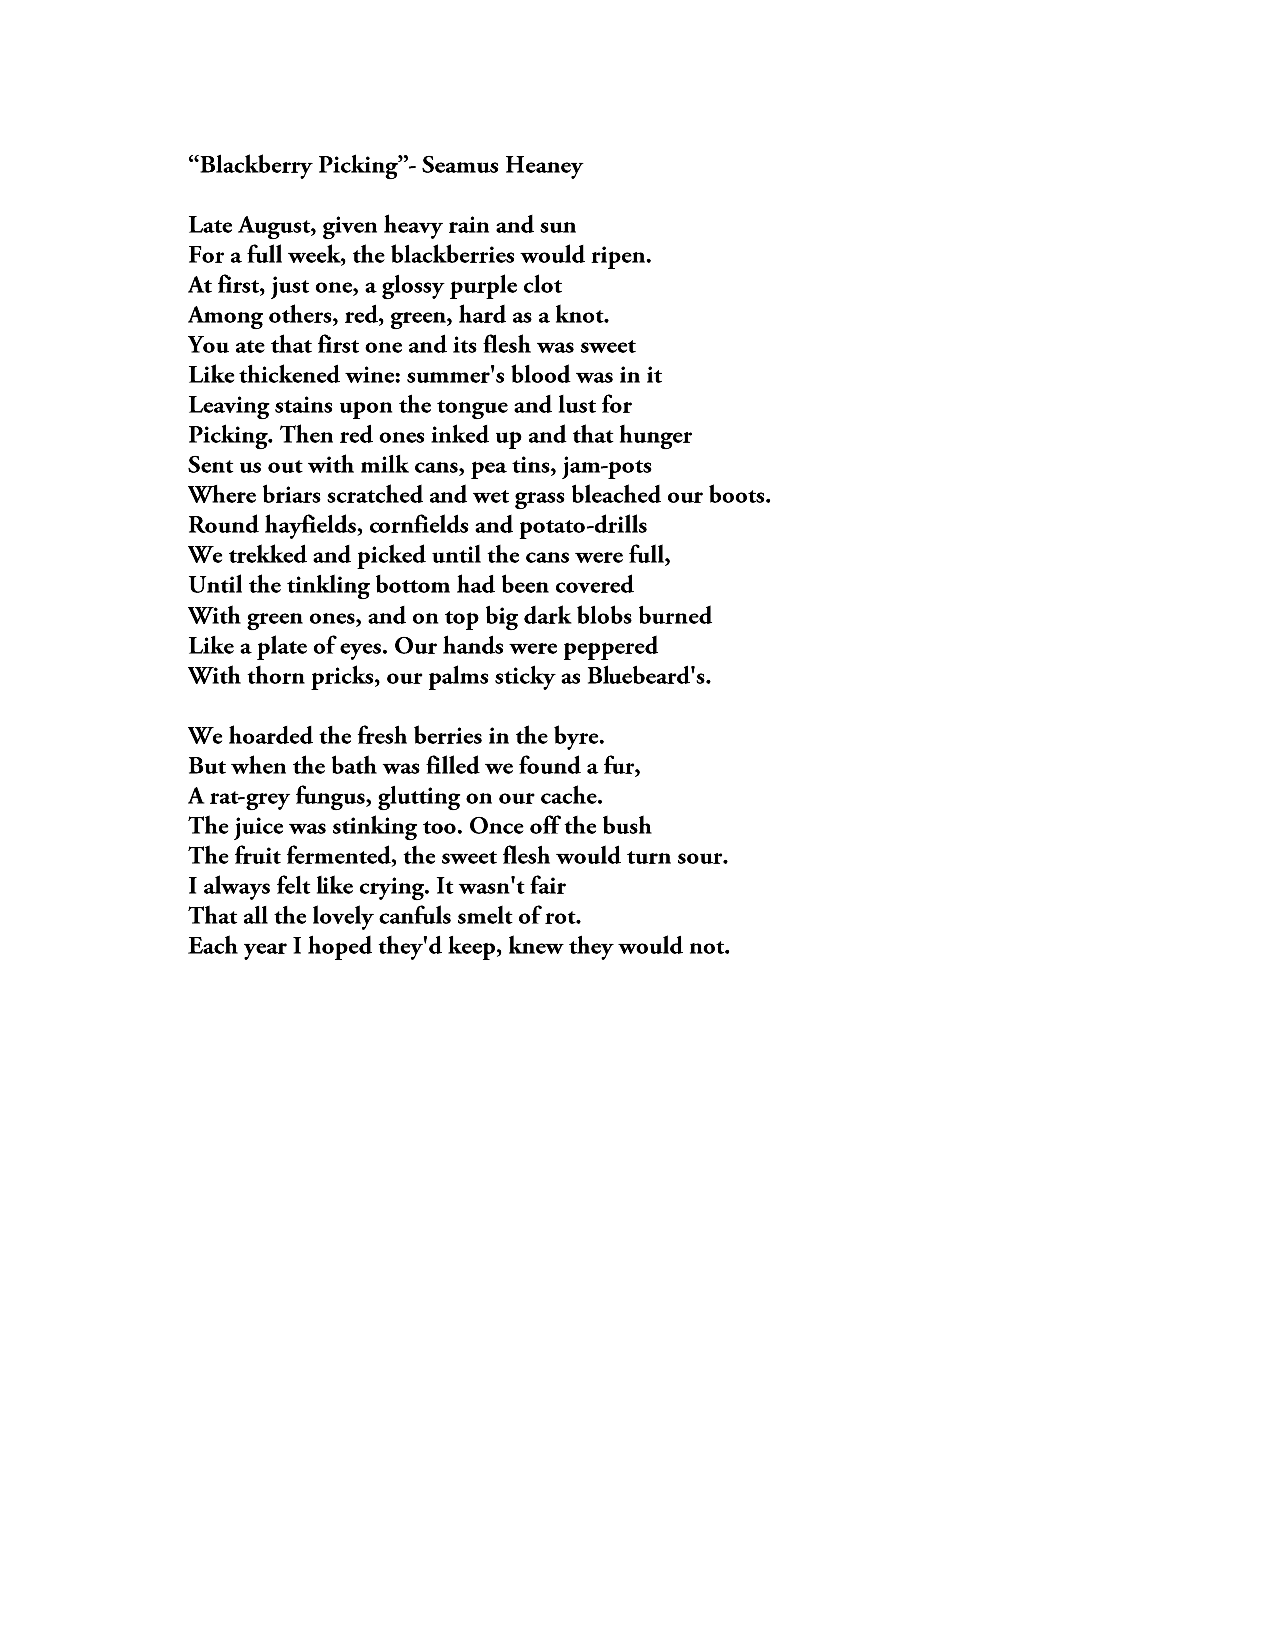 blackberry picking by seamus heaney essay  blackberry picking by seamus heaney essay